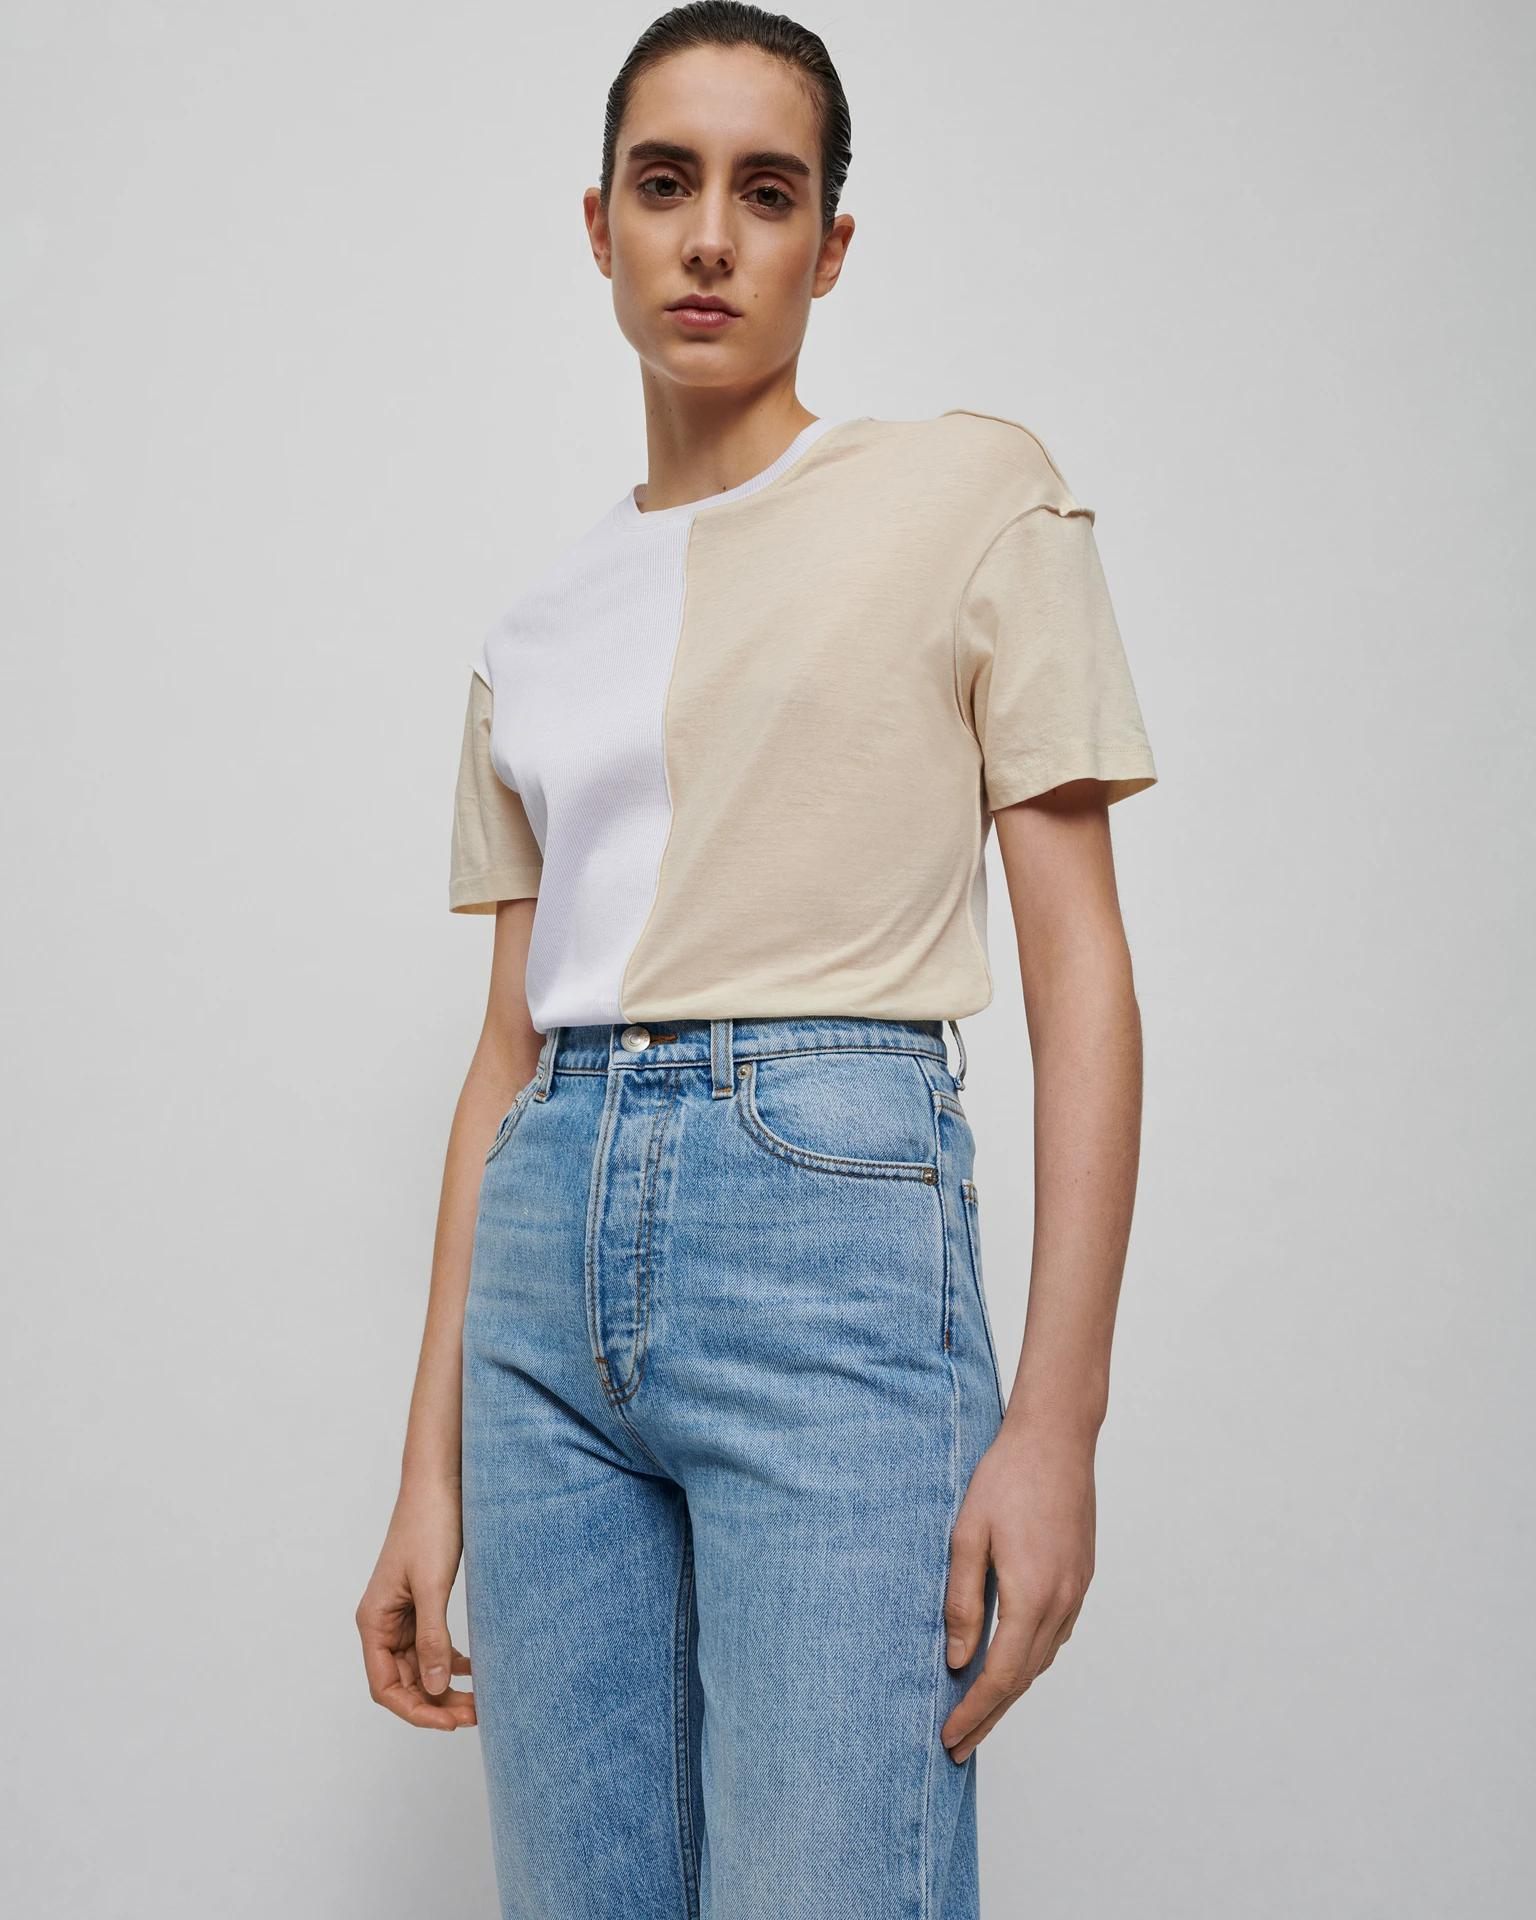 HOVE - Upcycled jersey T-shirt - Creme 2